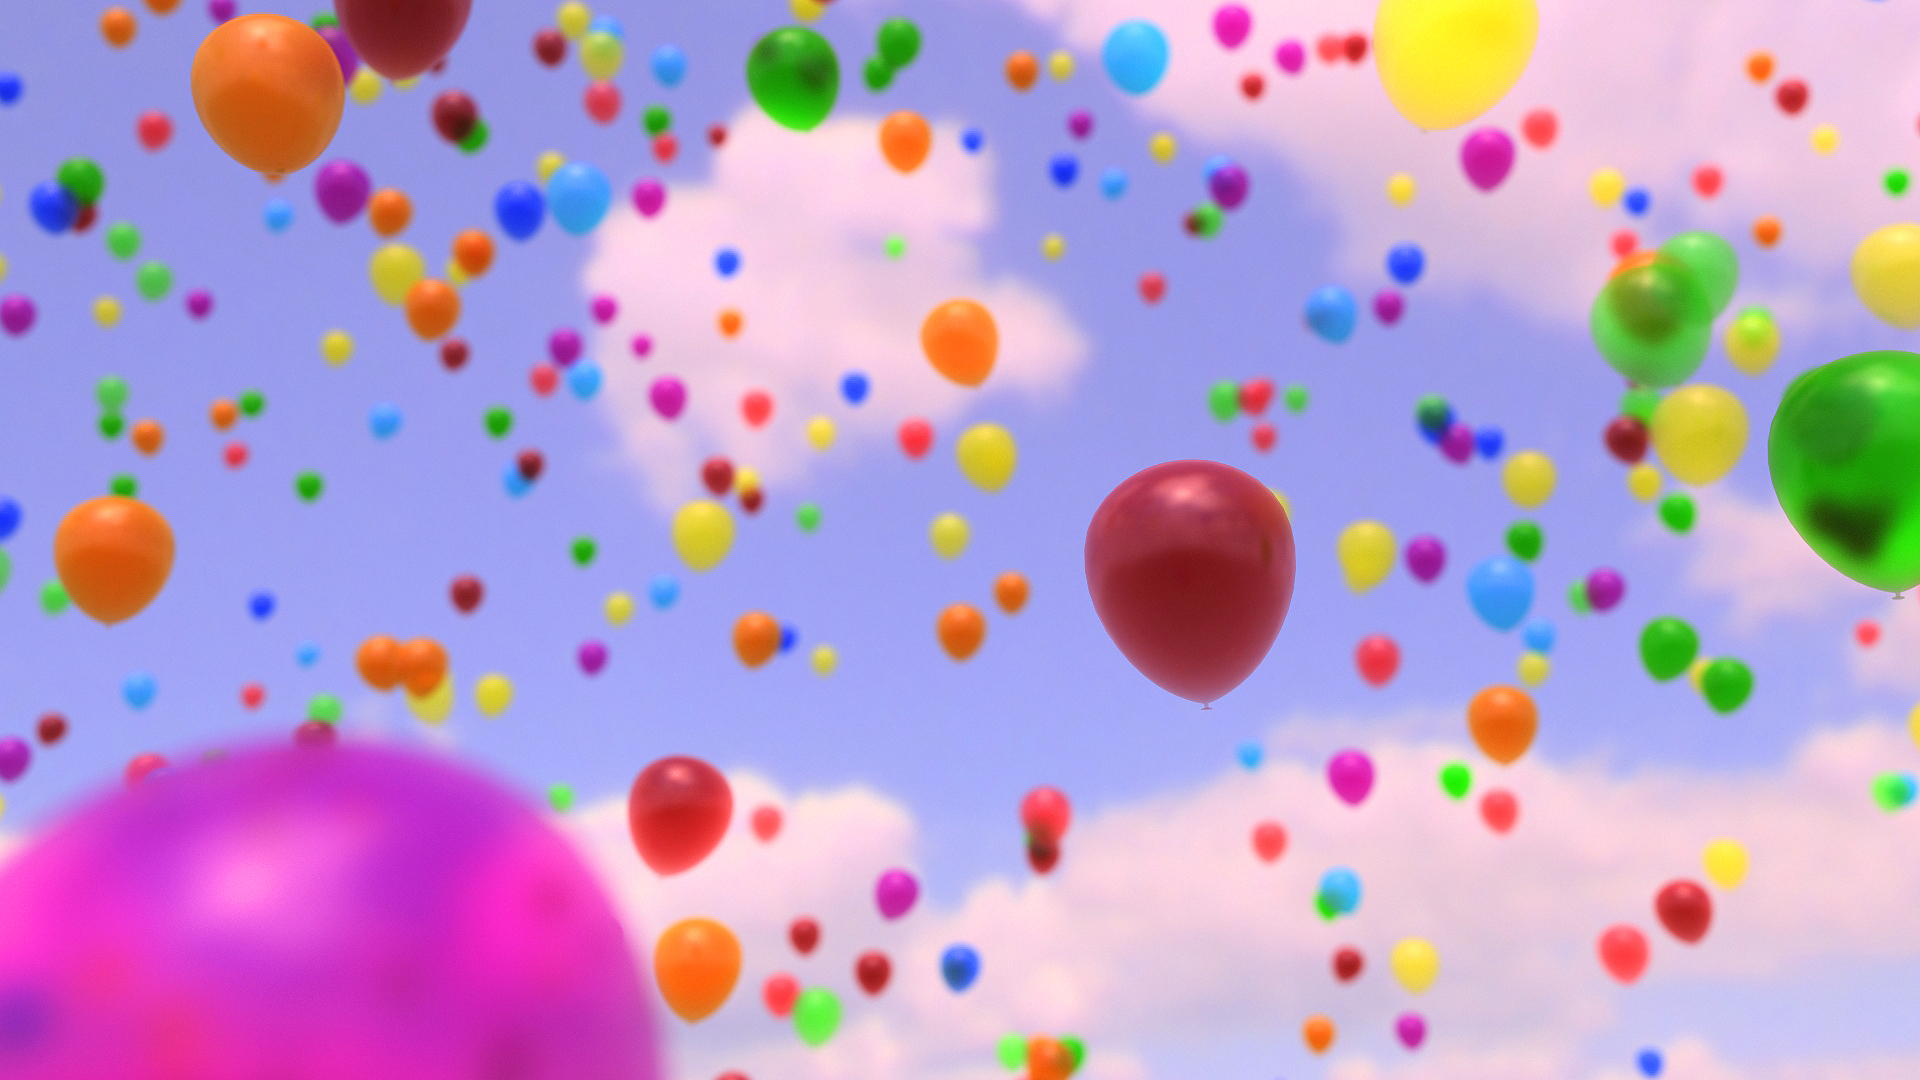 balloons background wanted 1920x1080 1920x1080